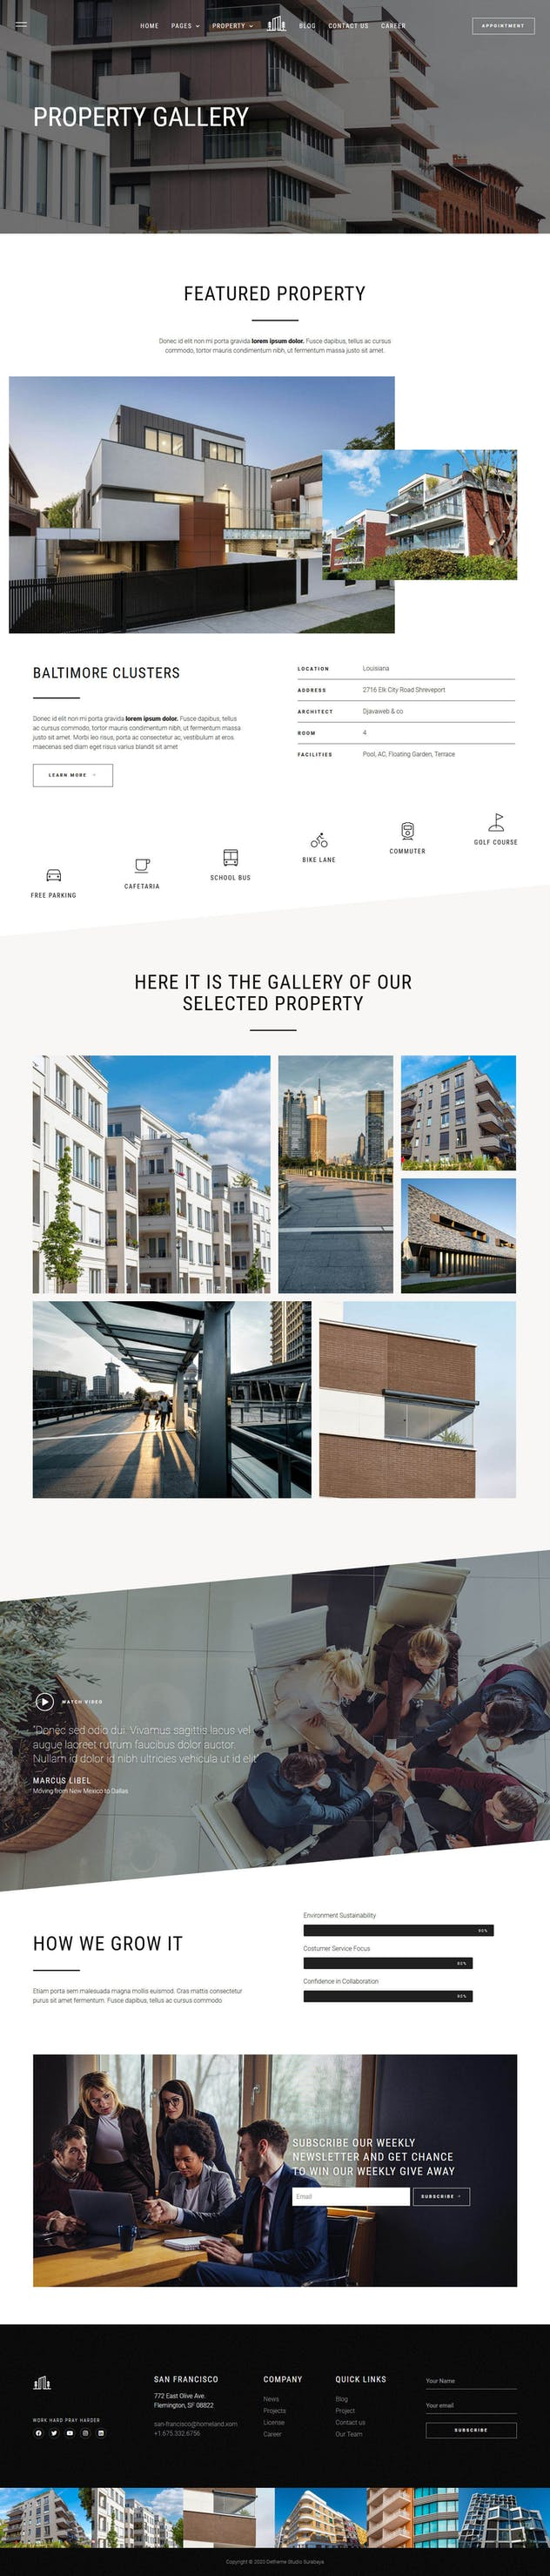 Homeland — Real Estate & Property Elementor Template Kit - product preview 13